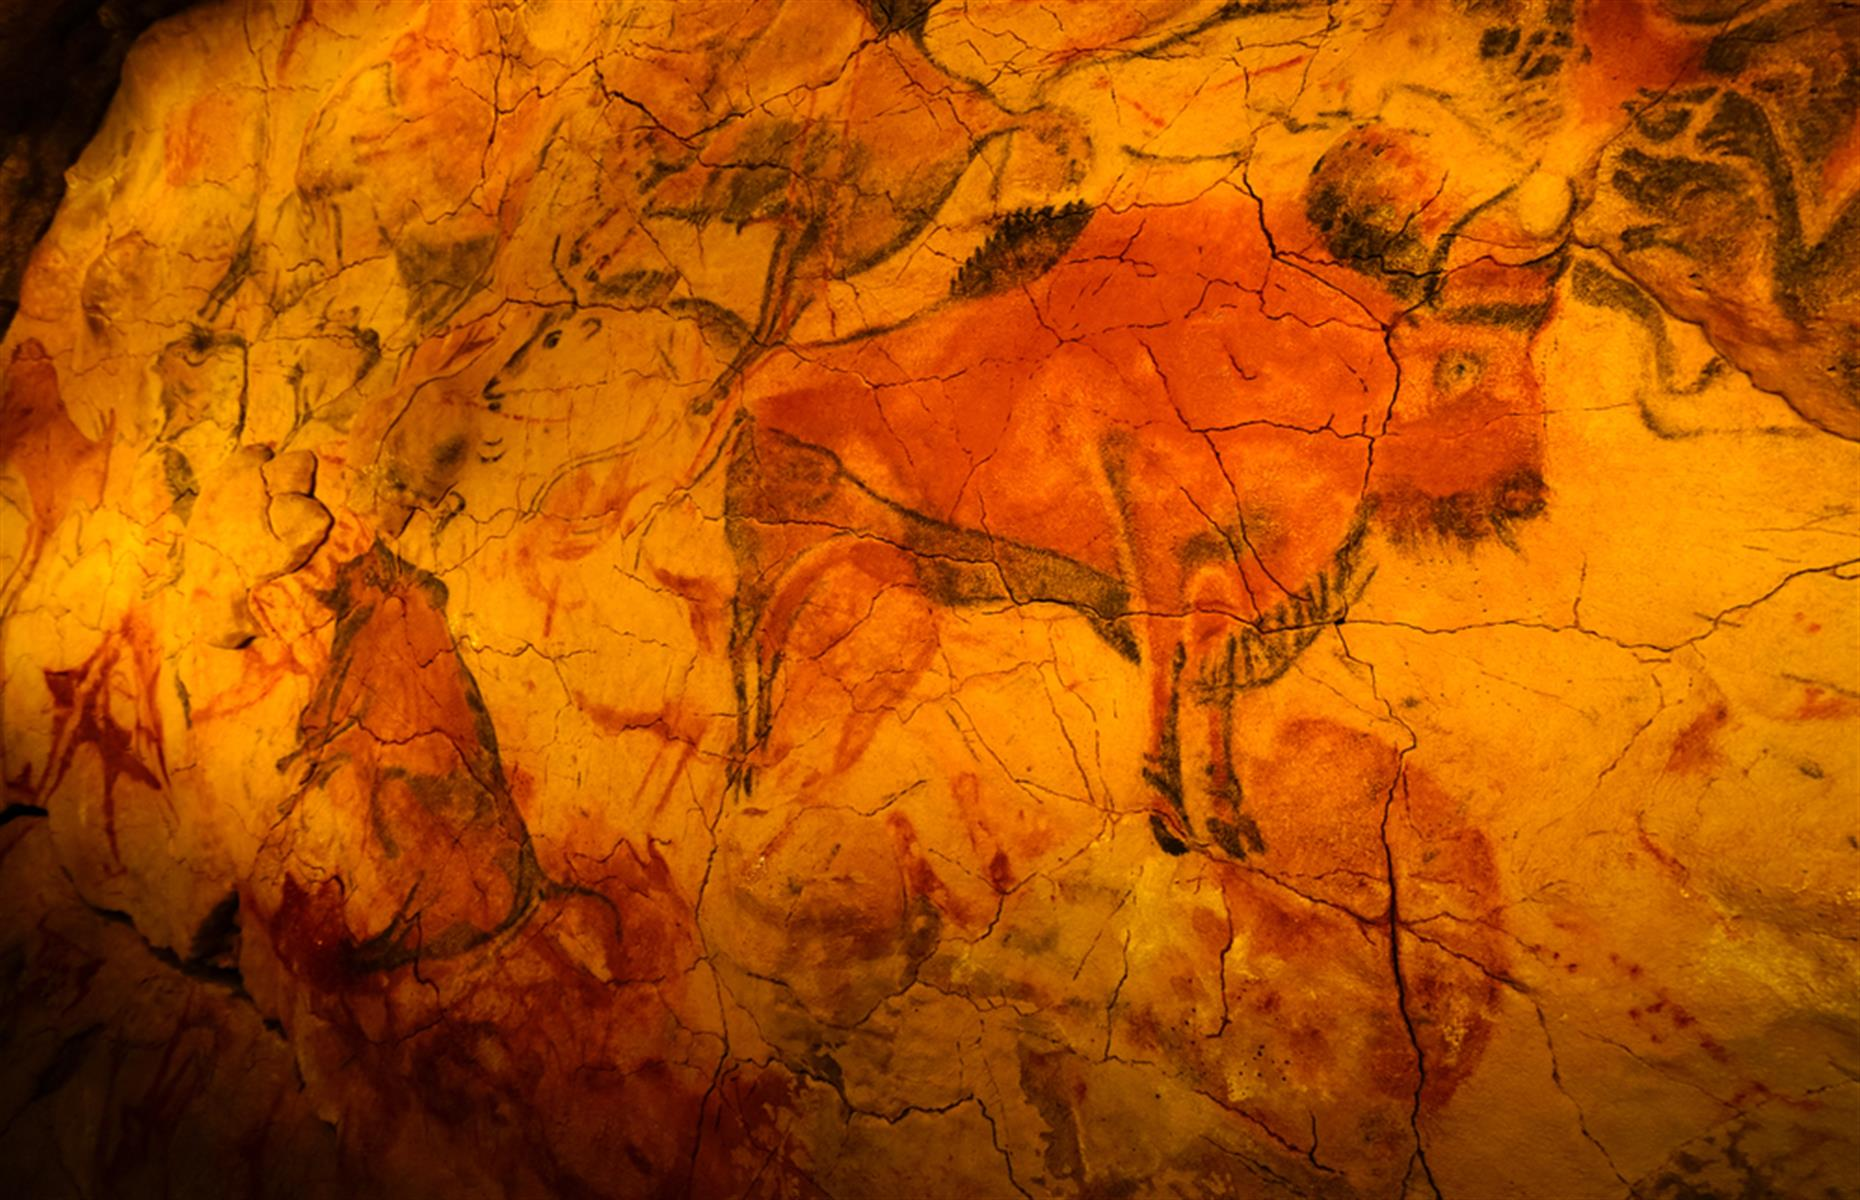 Slide 18 of 33: The 14,000-year-old bison drawings in northern Spain's Caves of Altamira are closed to crowds for similar reasons to the Lascaux Caves. Preservation is key. A maximum of six people are allowed to take the tour at each time.